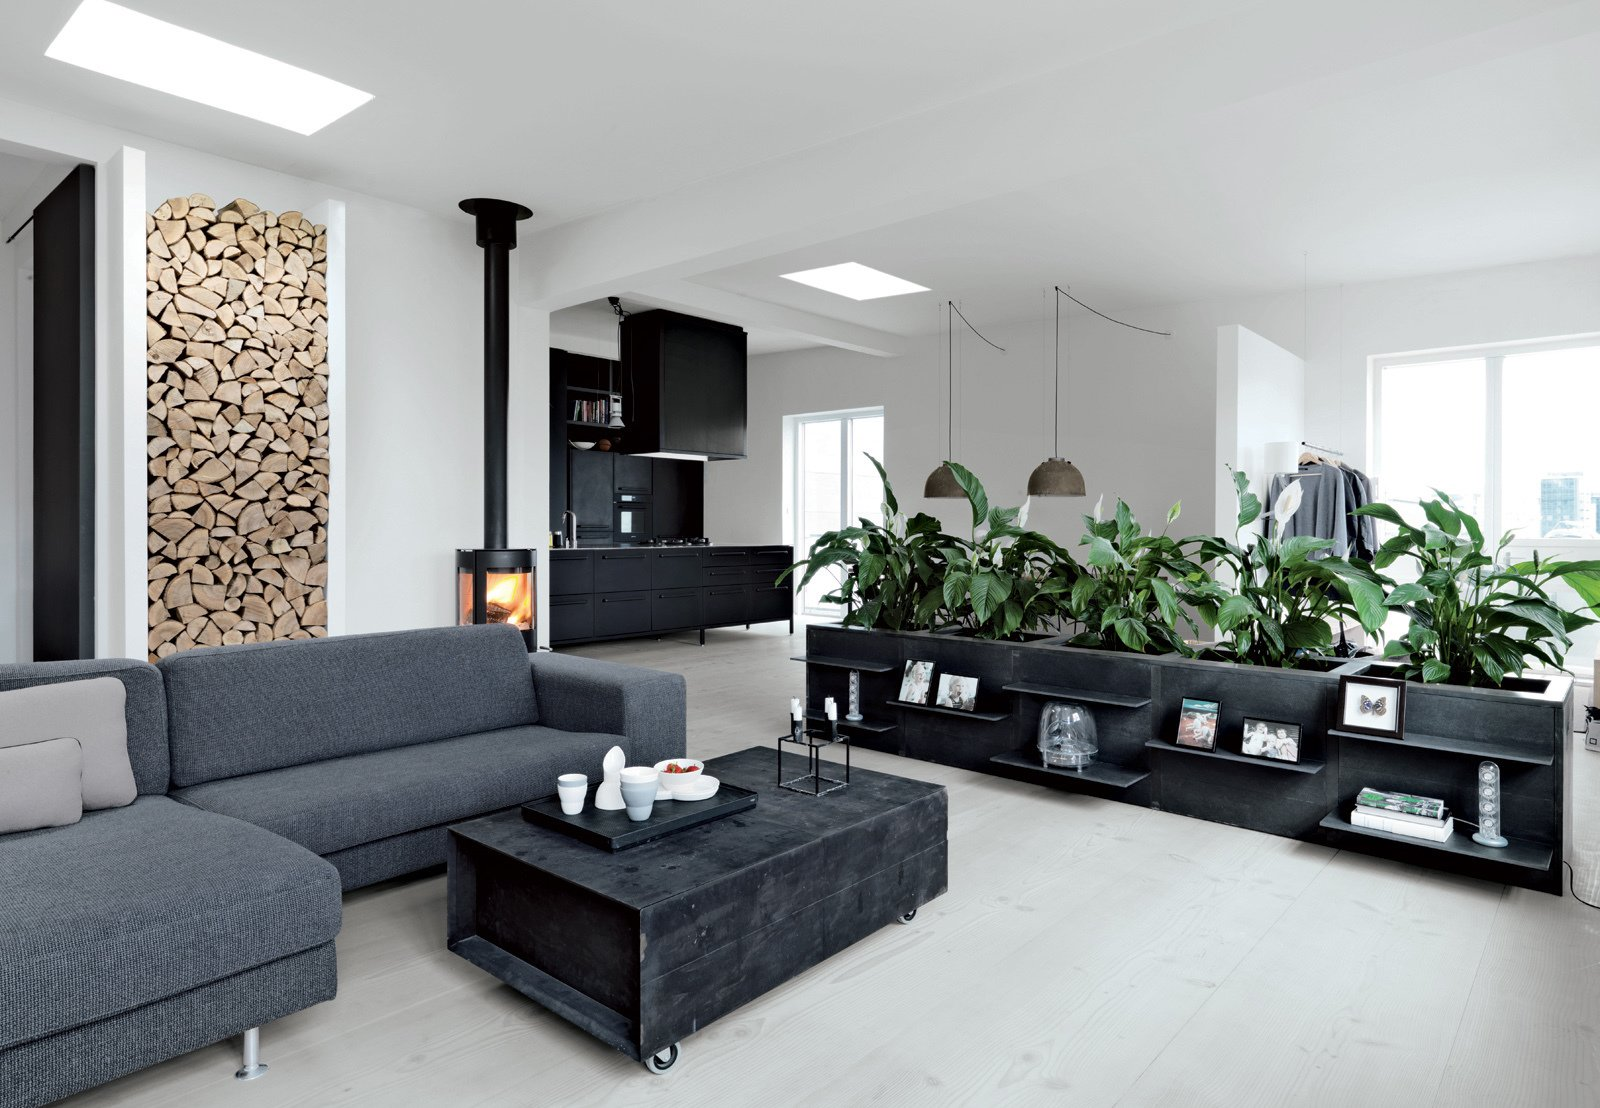 In this sleek monochromatic loft in Denmark, the residents built a nook to store wood, which turns the logs into an artful display.  Creative Ways to Store Firewood by Diana Budds